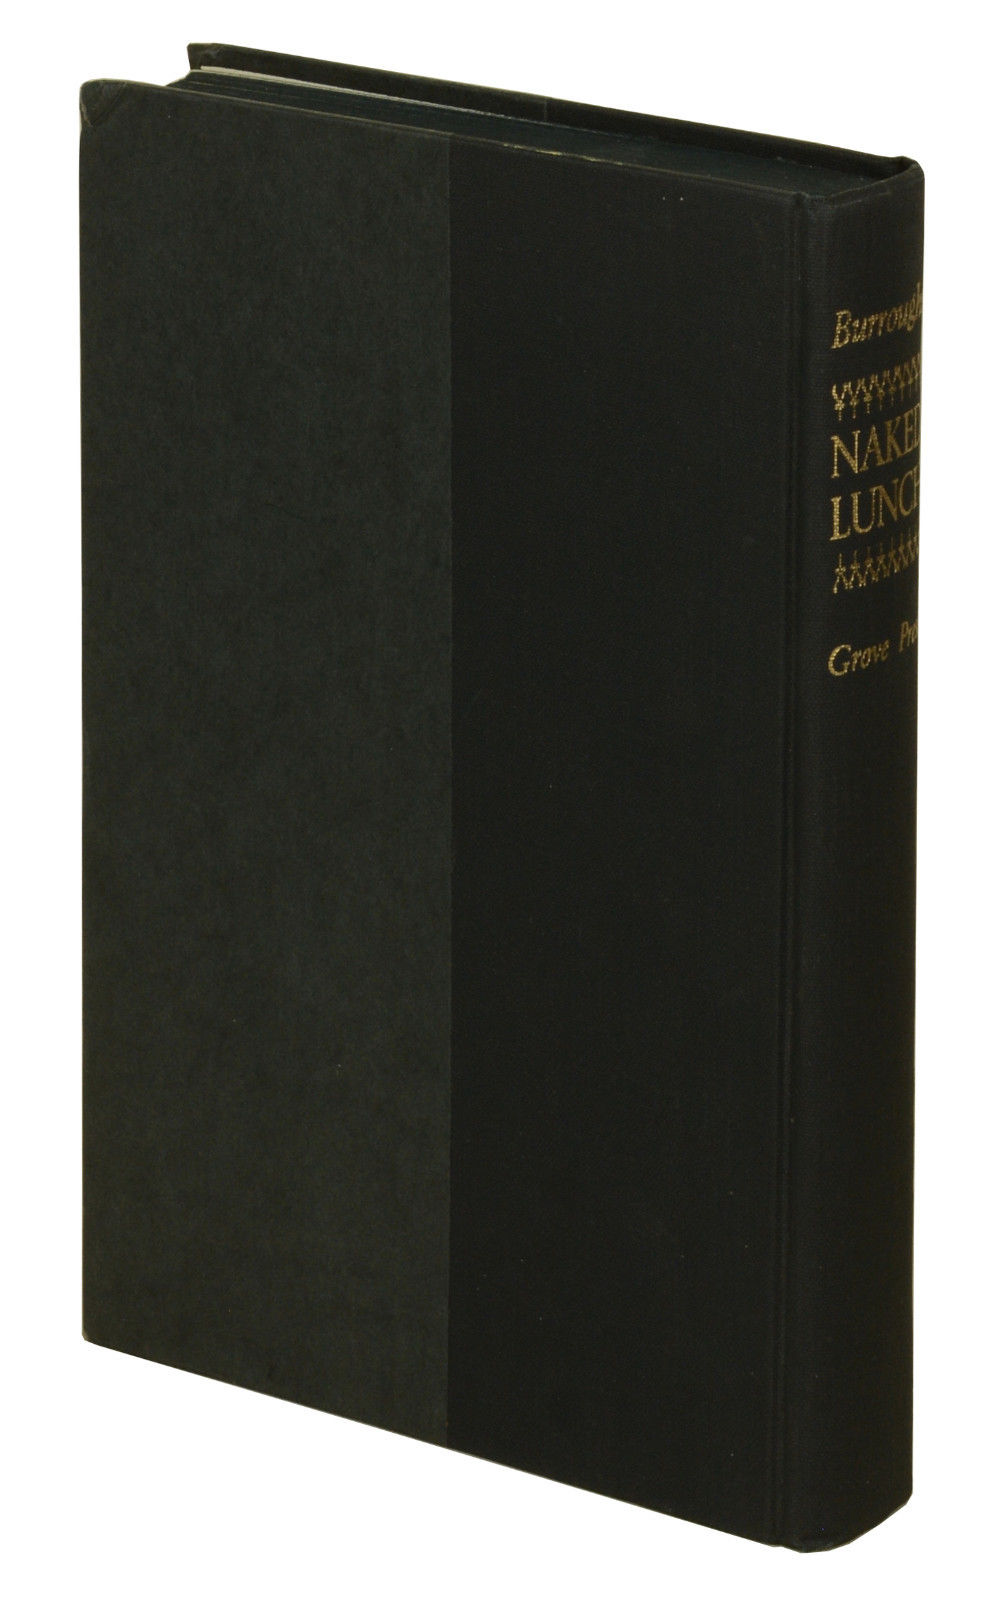 Naked Lunch   William S. Burroughs   First American Edition